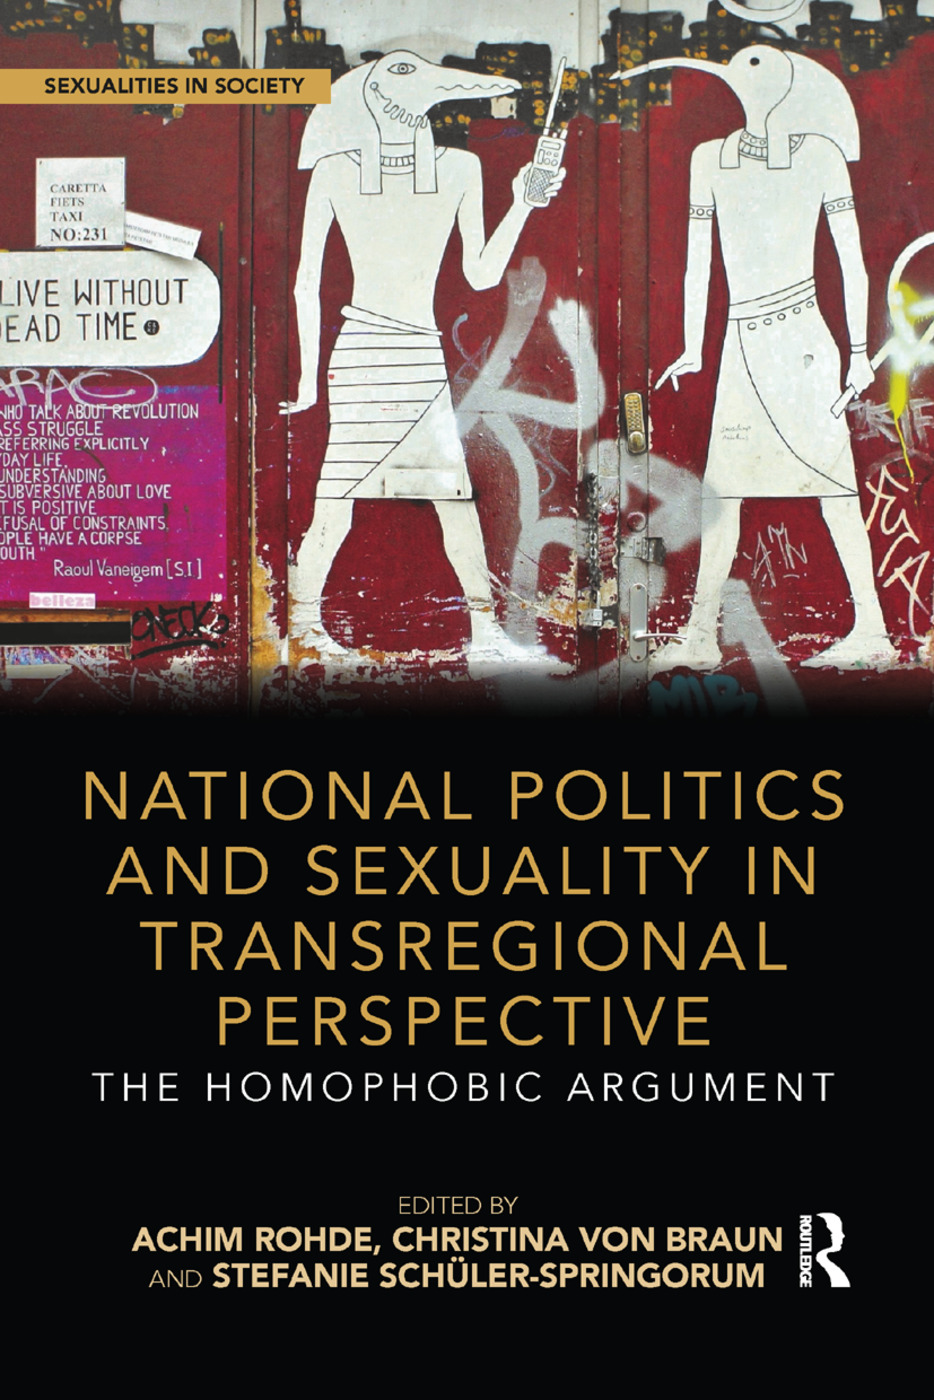 National Politics and Sexuality in Transregional Perspective: The Homophobic Argument book cover